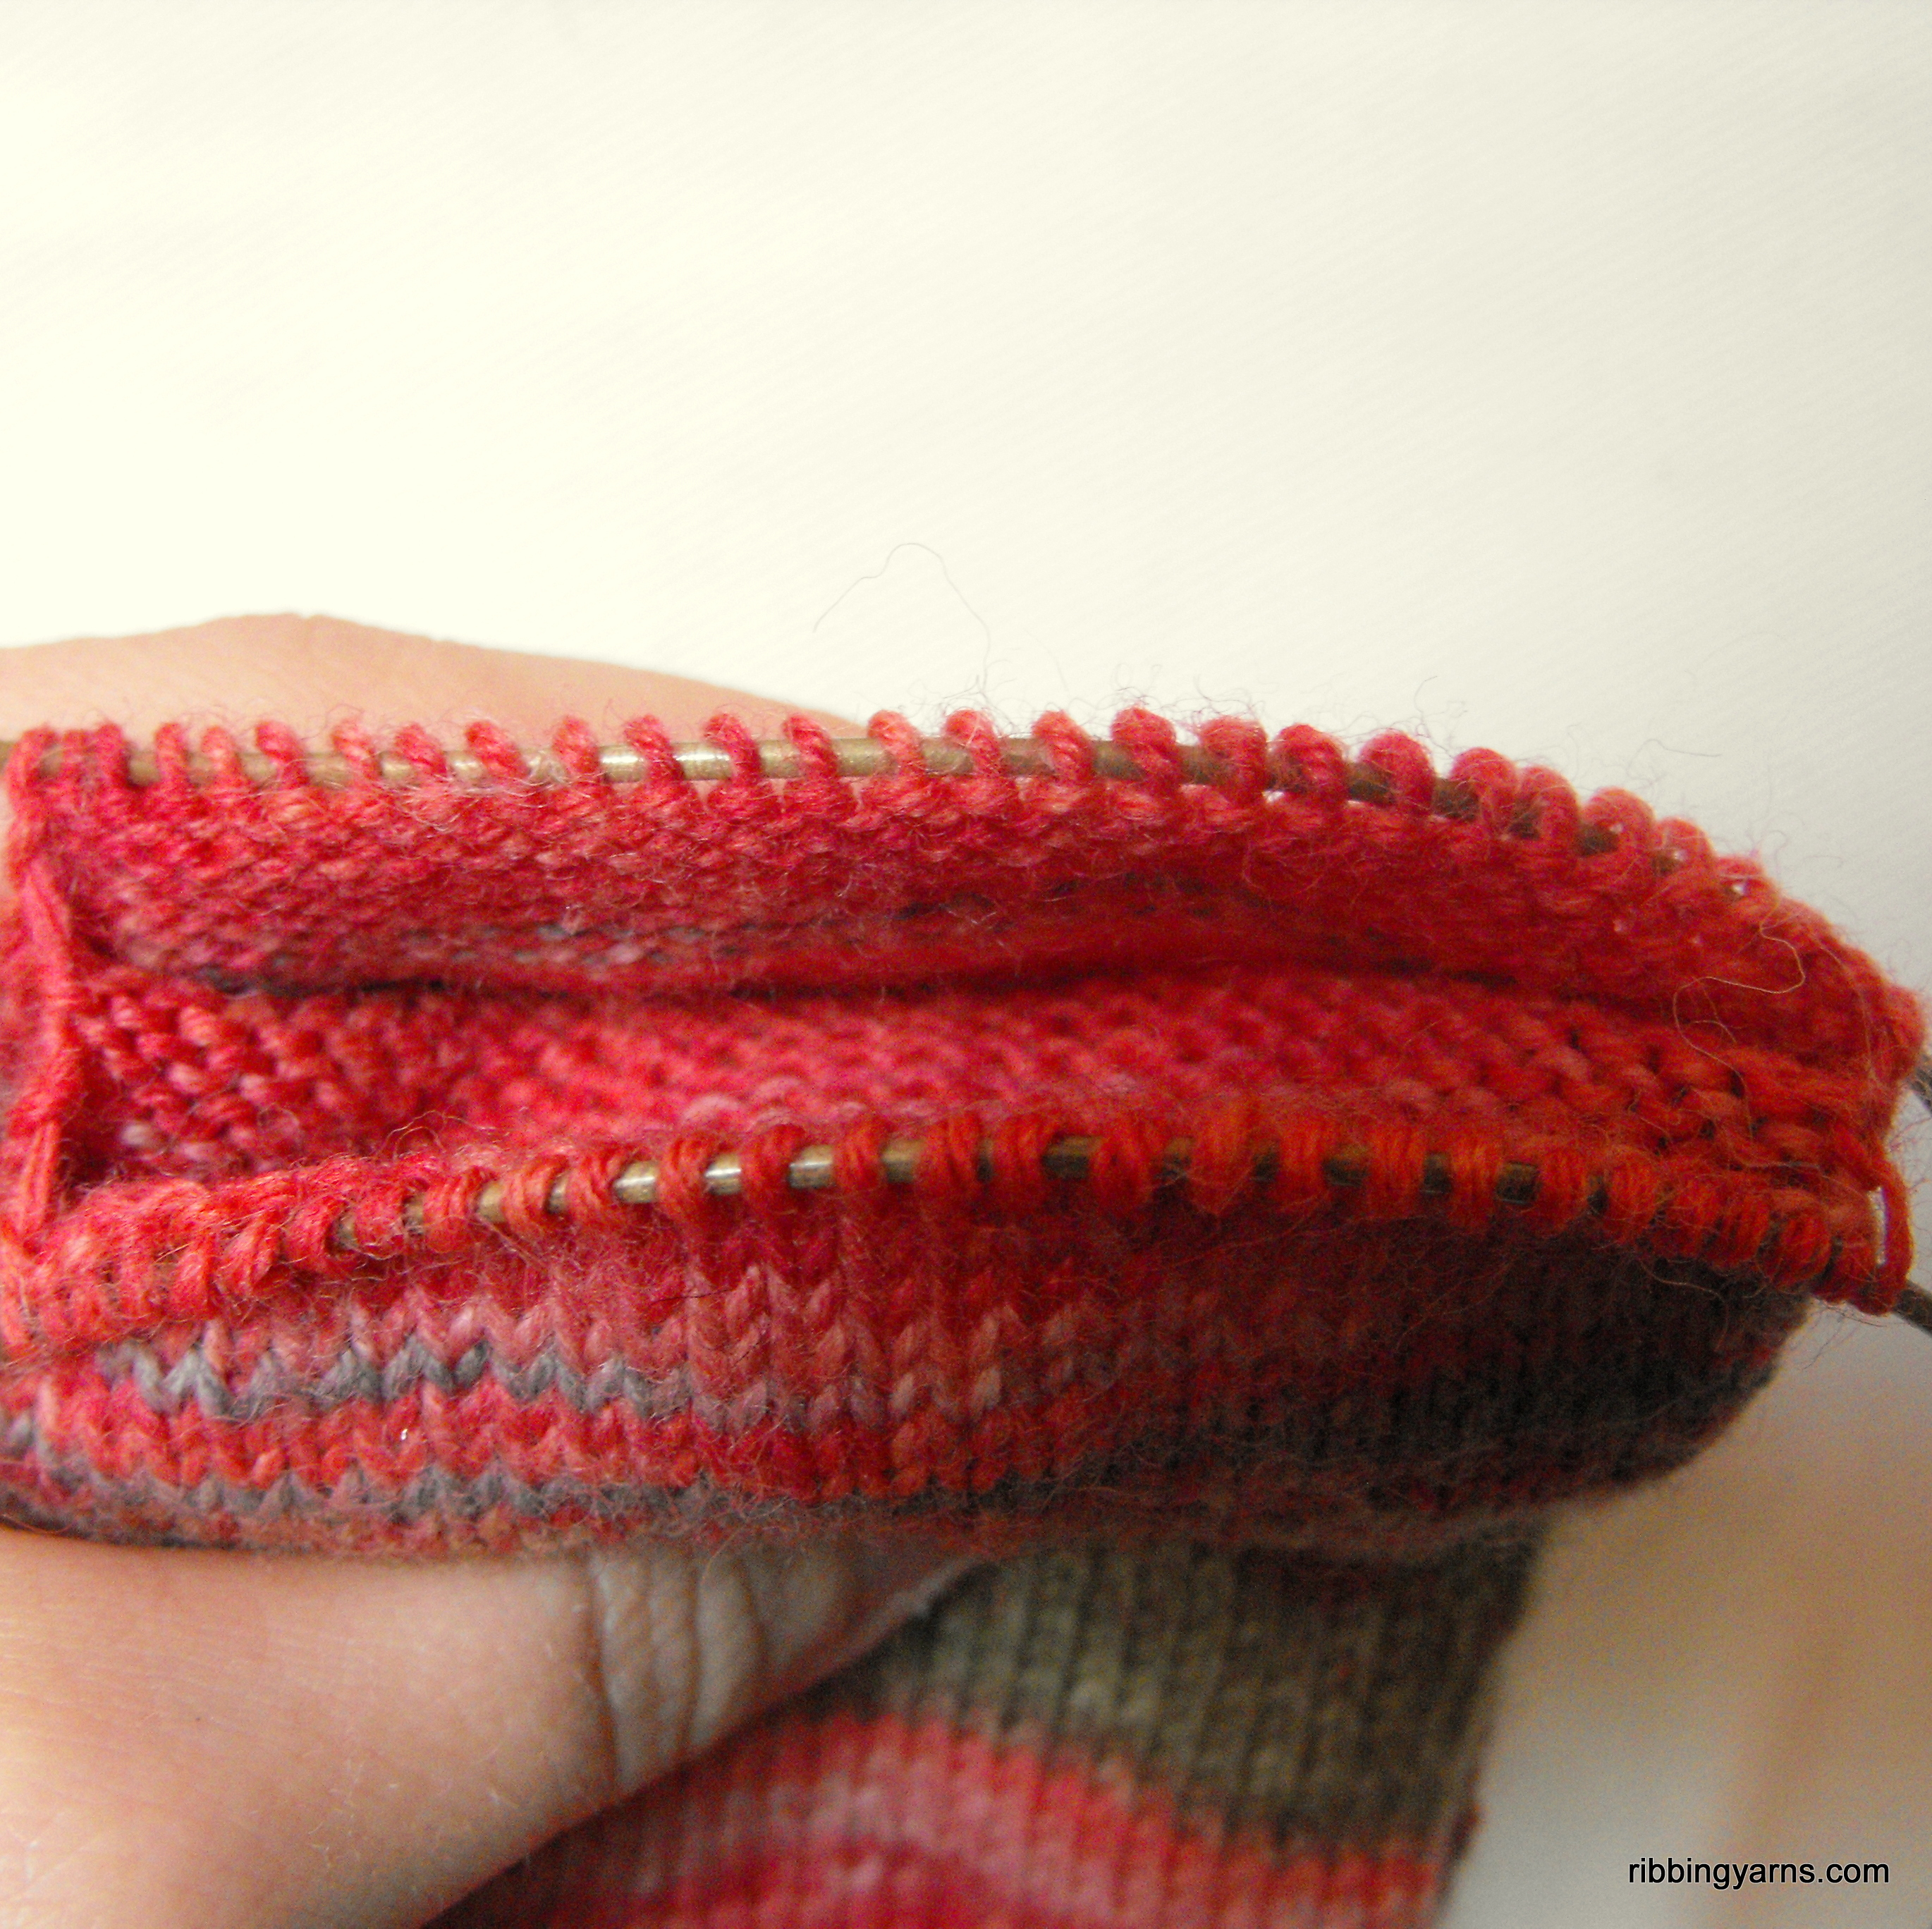 Knitting Picking Up Heel Stitches : How to Knit an Afterthought Heel (Part 2) Ribbing Yarns